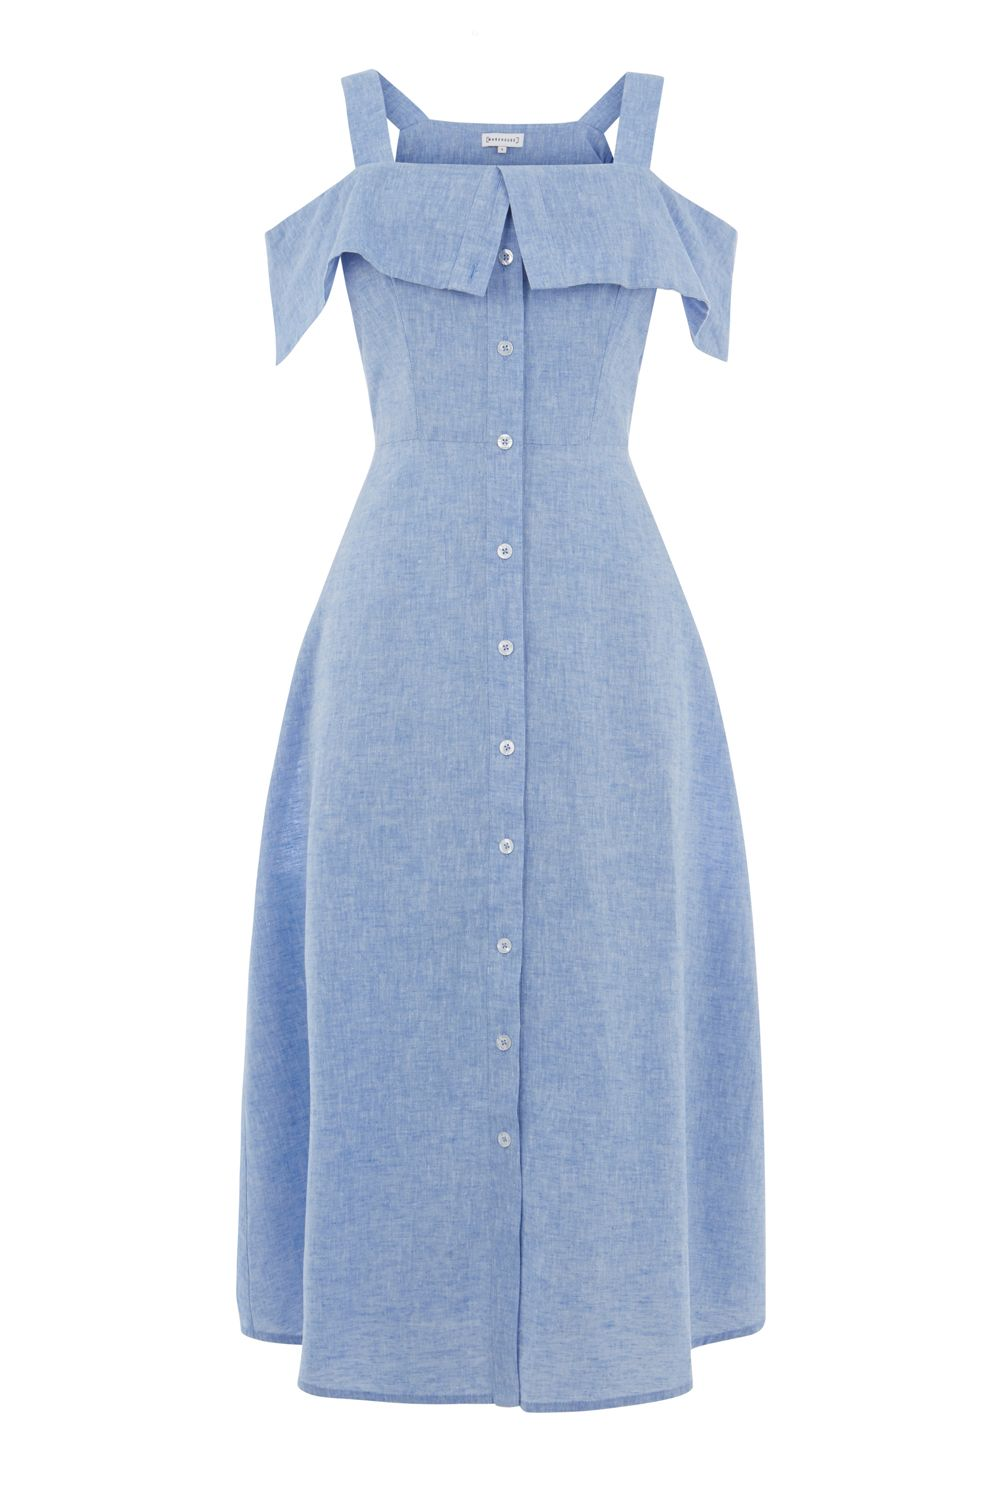 Warehouse Chambray Button Through Dress, Blue